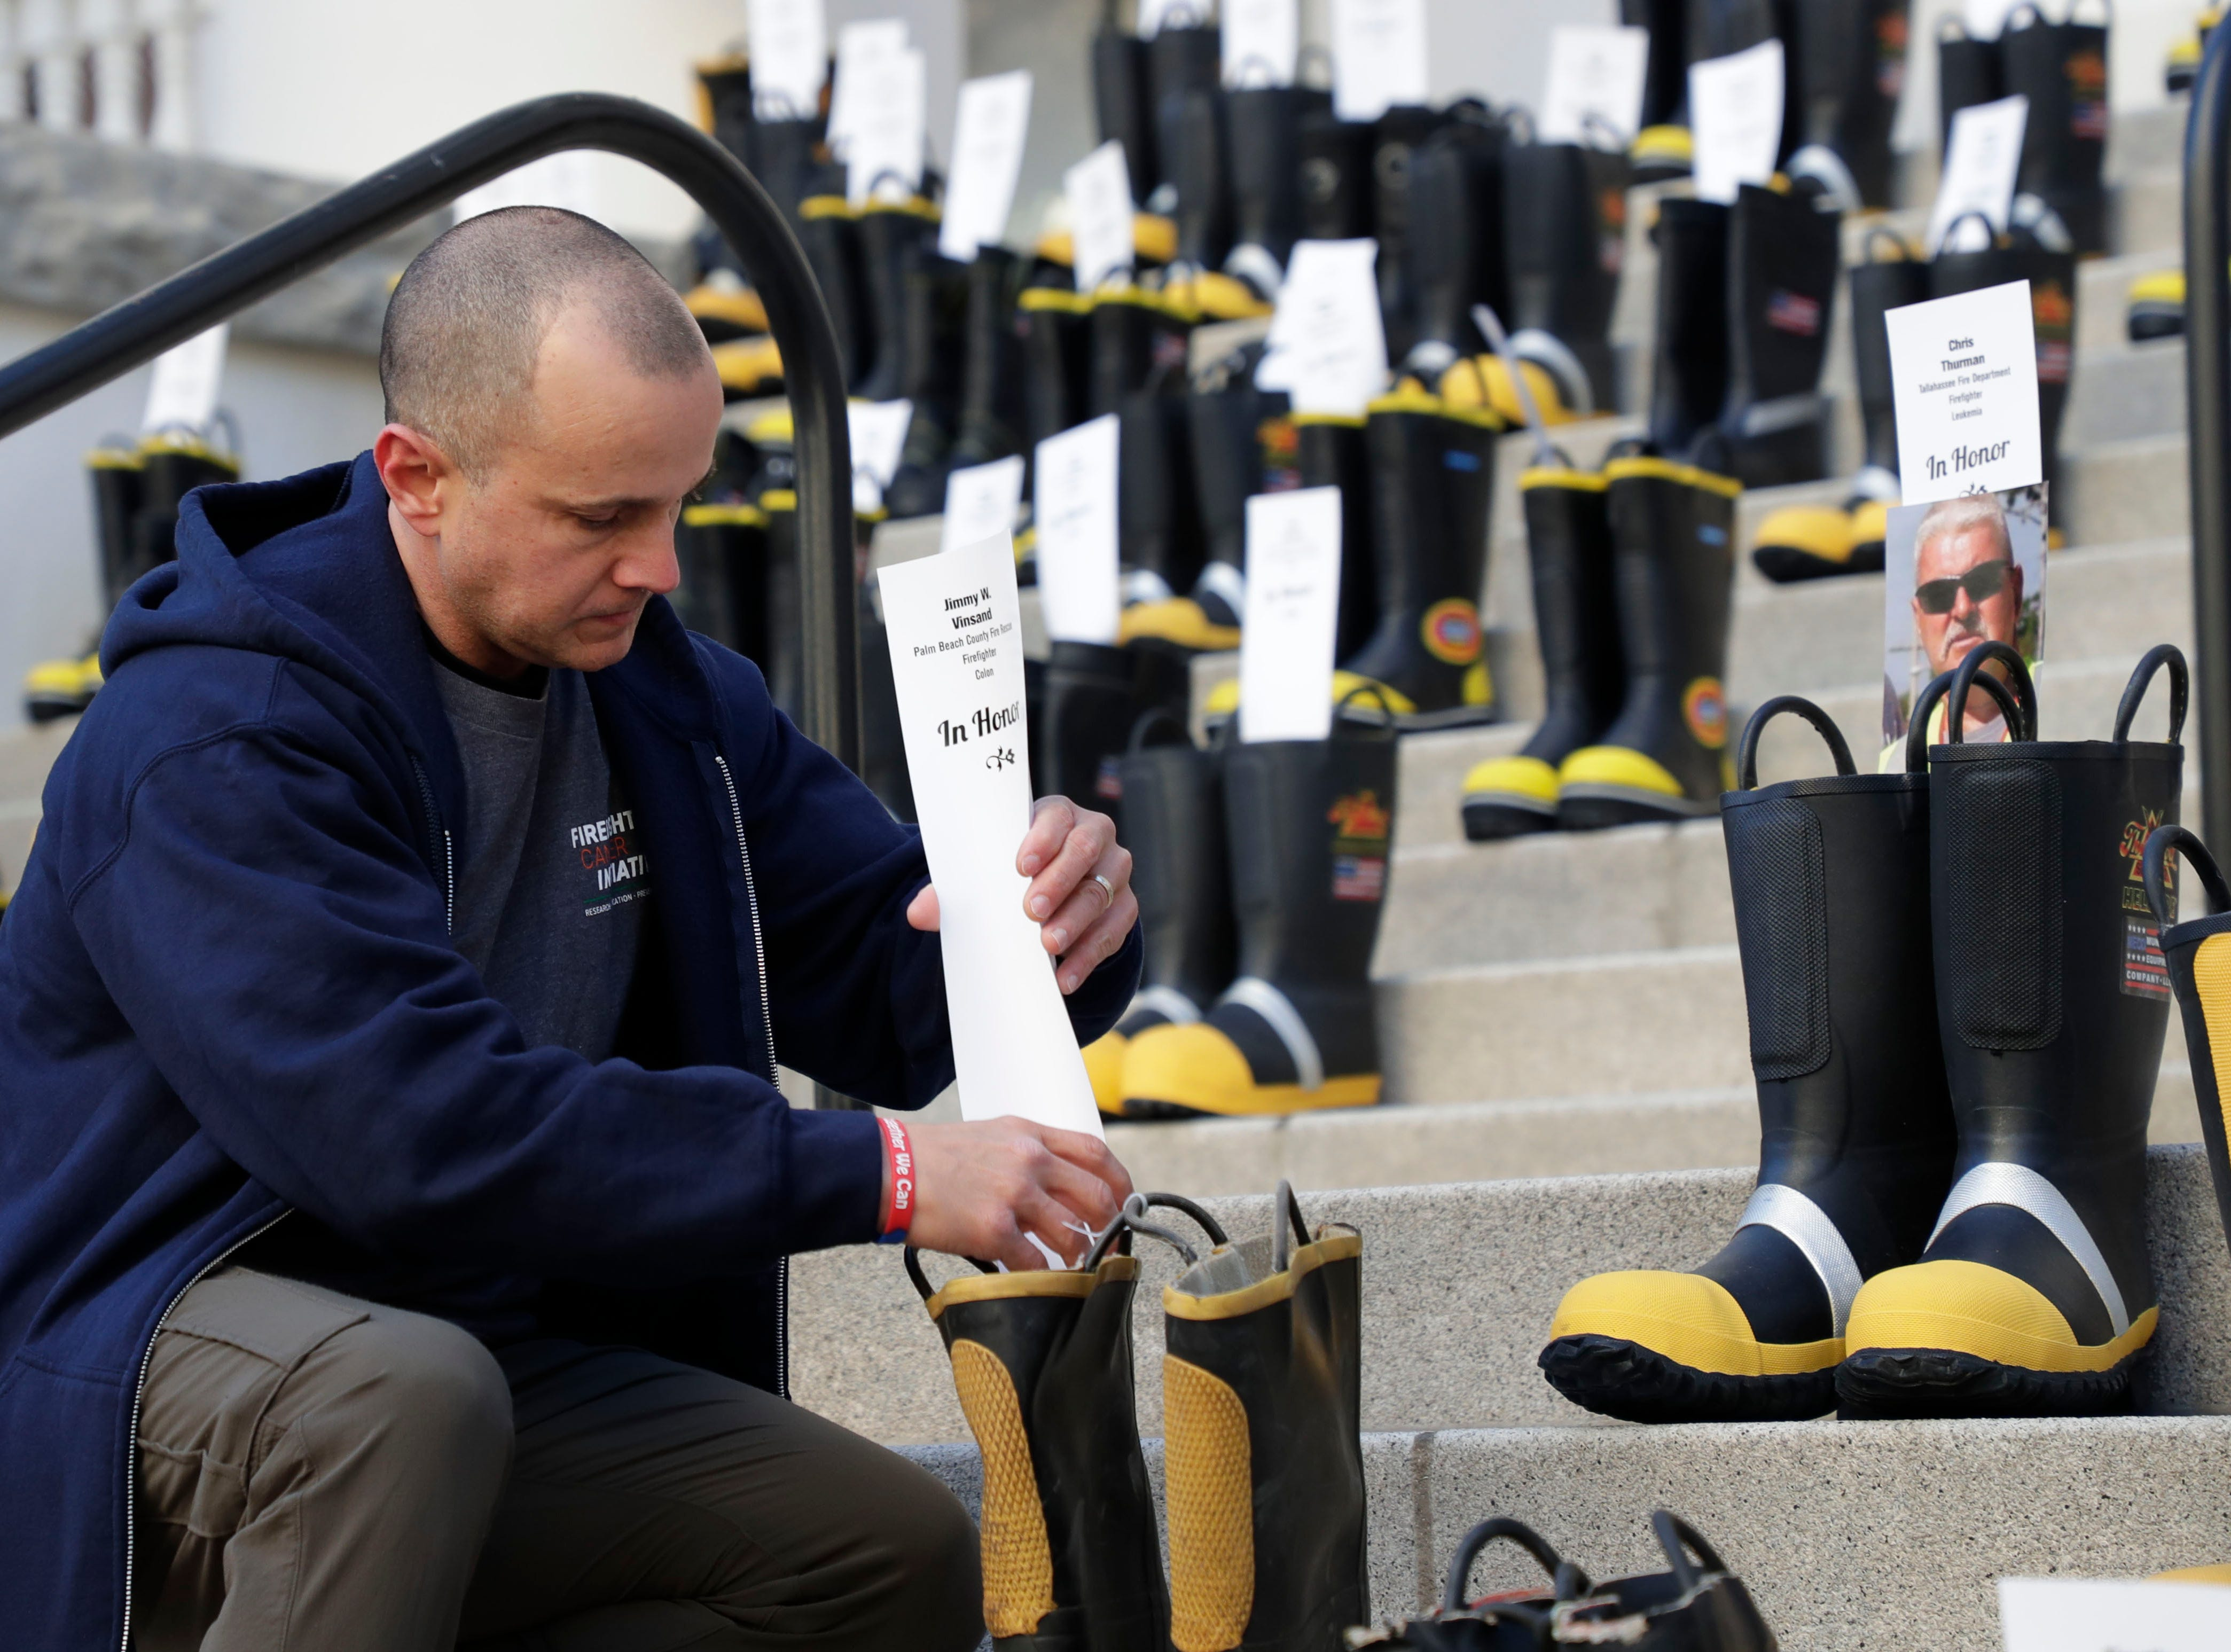 Bert Vergara, a firefighter with Osceola County Fire Rescue, places a card honoring a firefighter who lost their battle with cancer. Firefighters and their families from around the state create a display at the Capitol of 500 pairs of boots in honor of firefighters who lost their battle or are battling with cancer caused from smoke inhalation and carcinogens Thursday, March 7, 2019. The state of Florida is one of five states in the country that does not have a bill acknowledging cancer is a job-related illness.